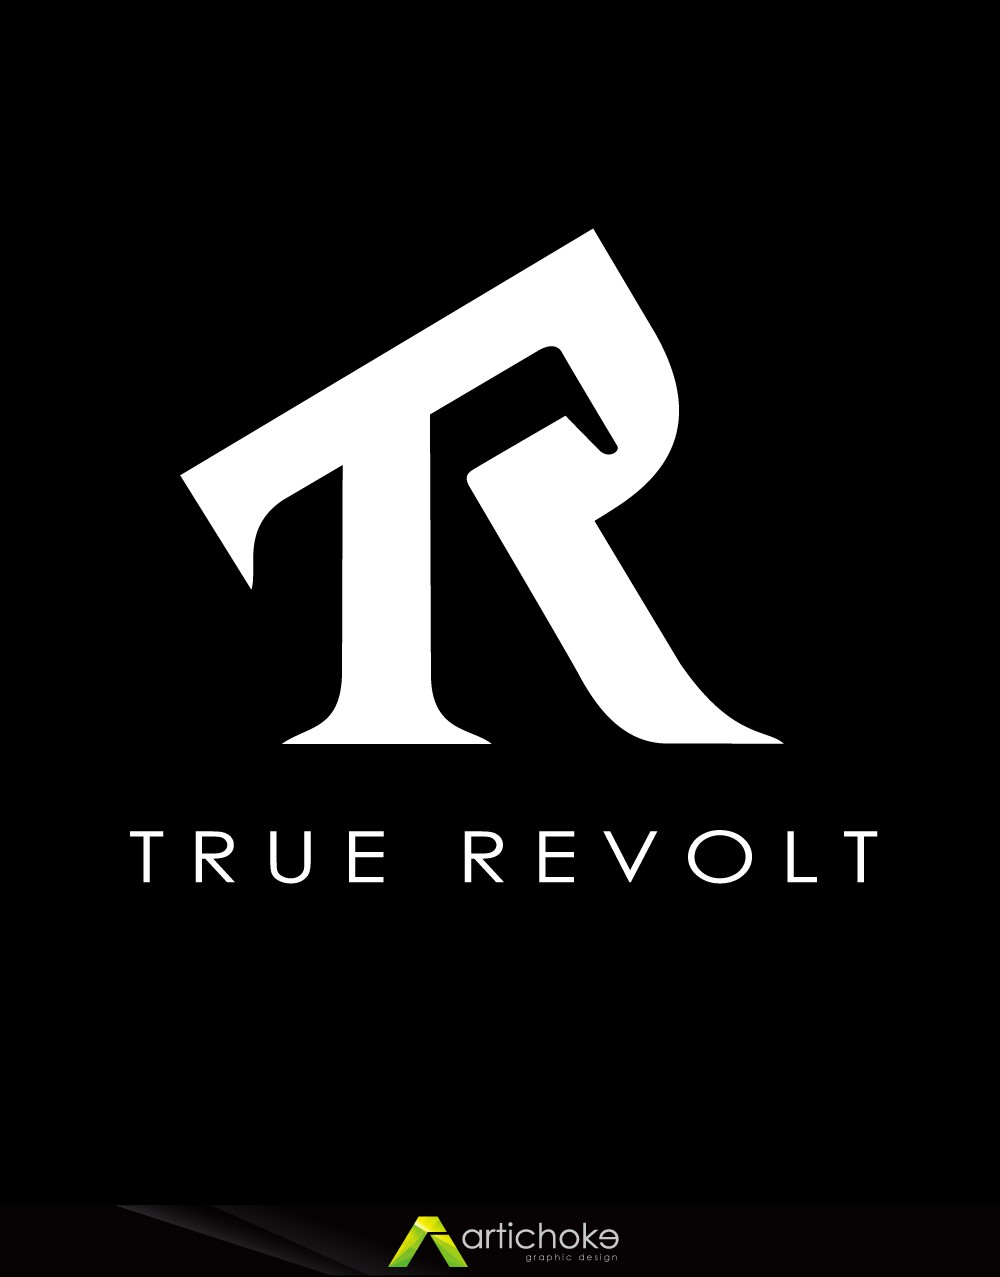 Push beyond your designing limits by creating the TrueRevolt visual stamp